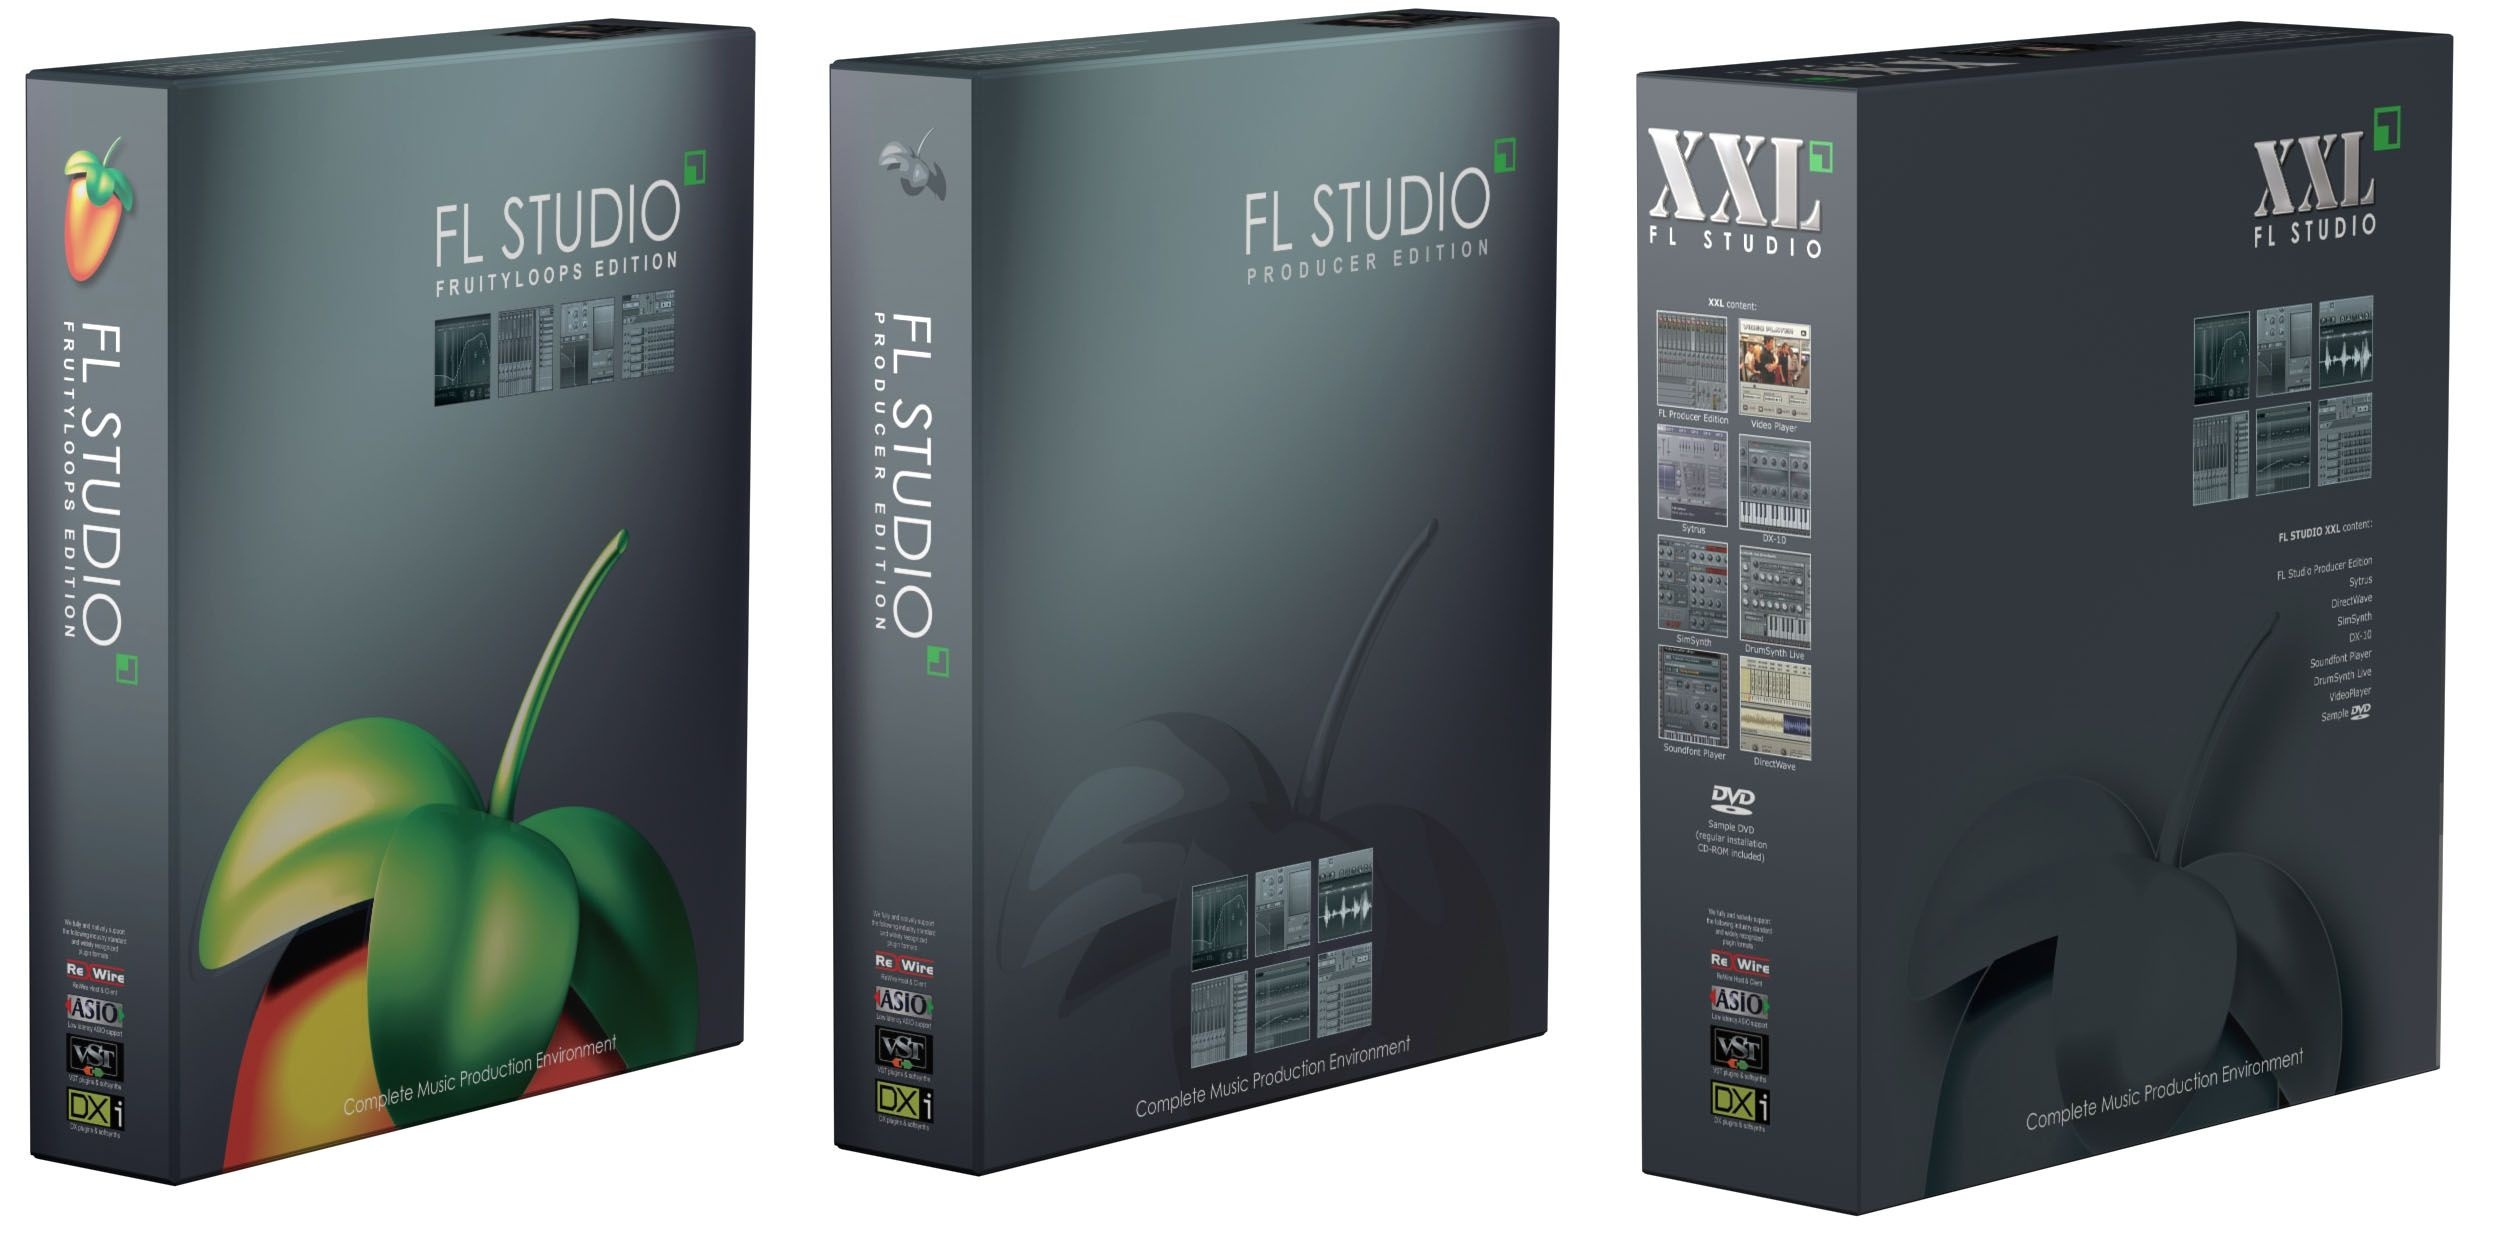 FL Studio vs Ableton Live. Which DAW Is Right For You